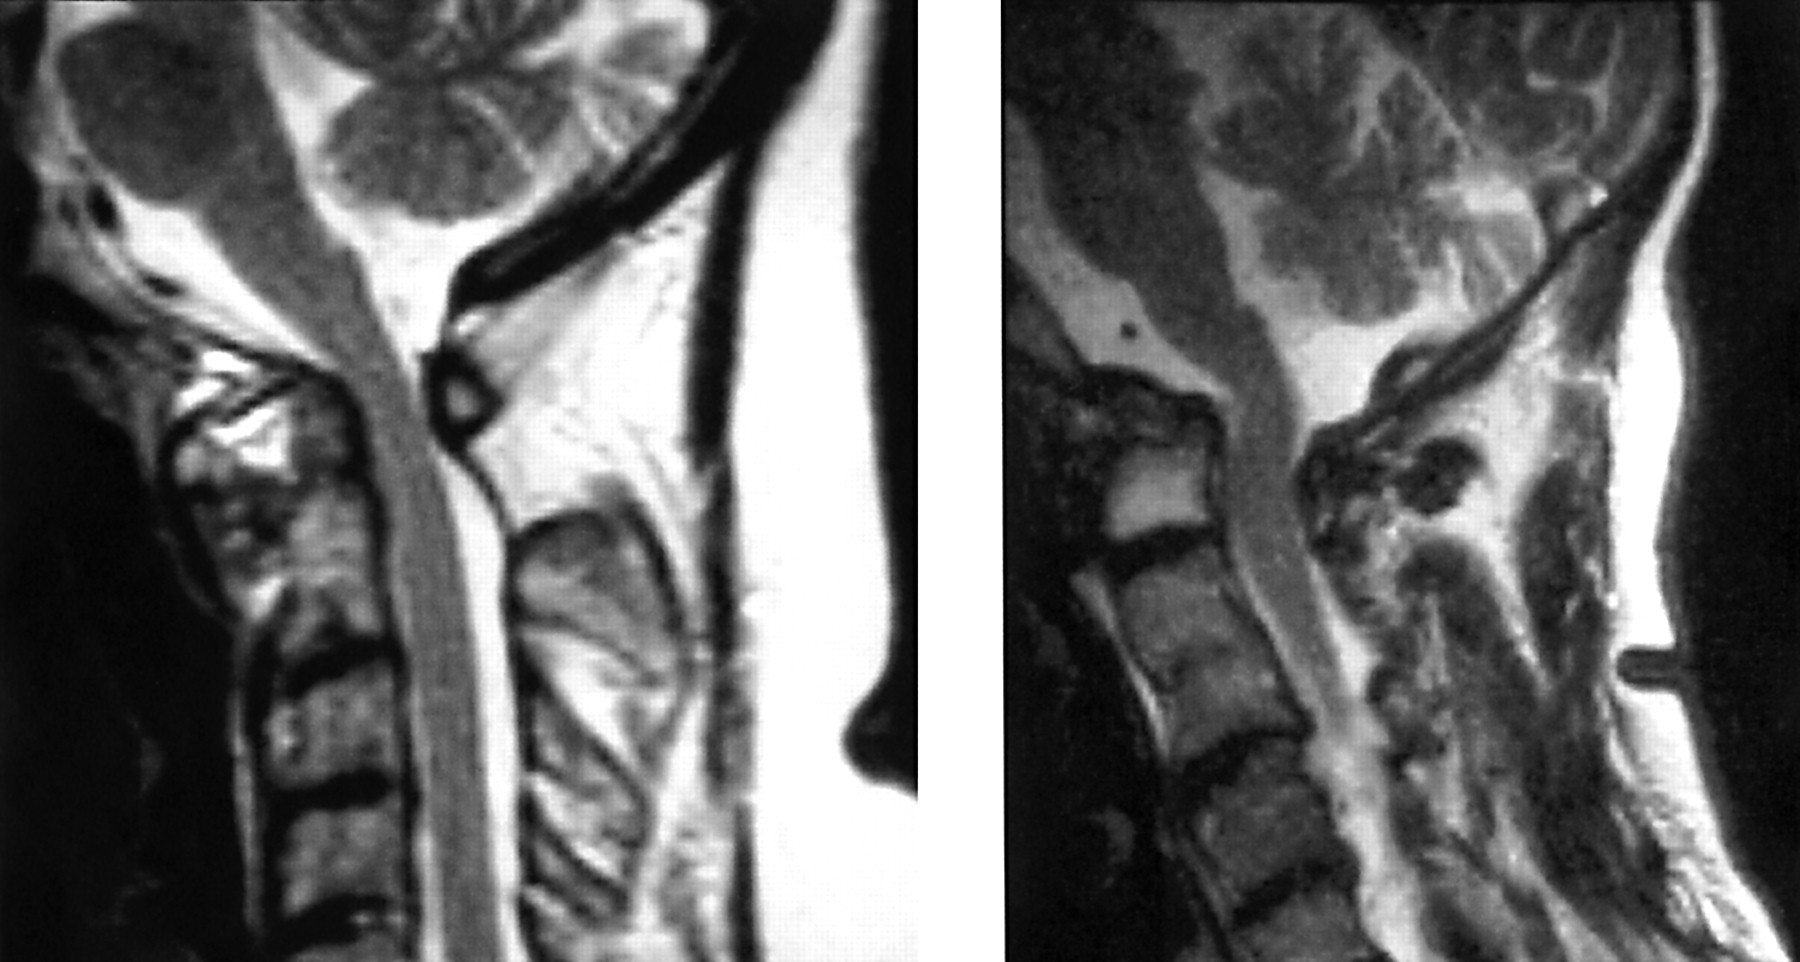 SURGICAL DISORDERS OF THE CERVICAL SPINE: PRESENTATION AND ...